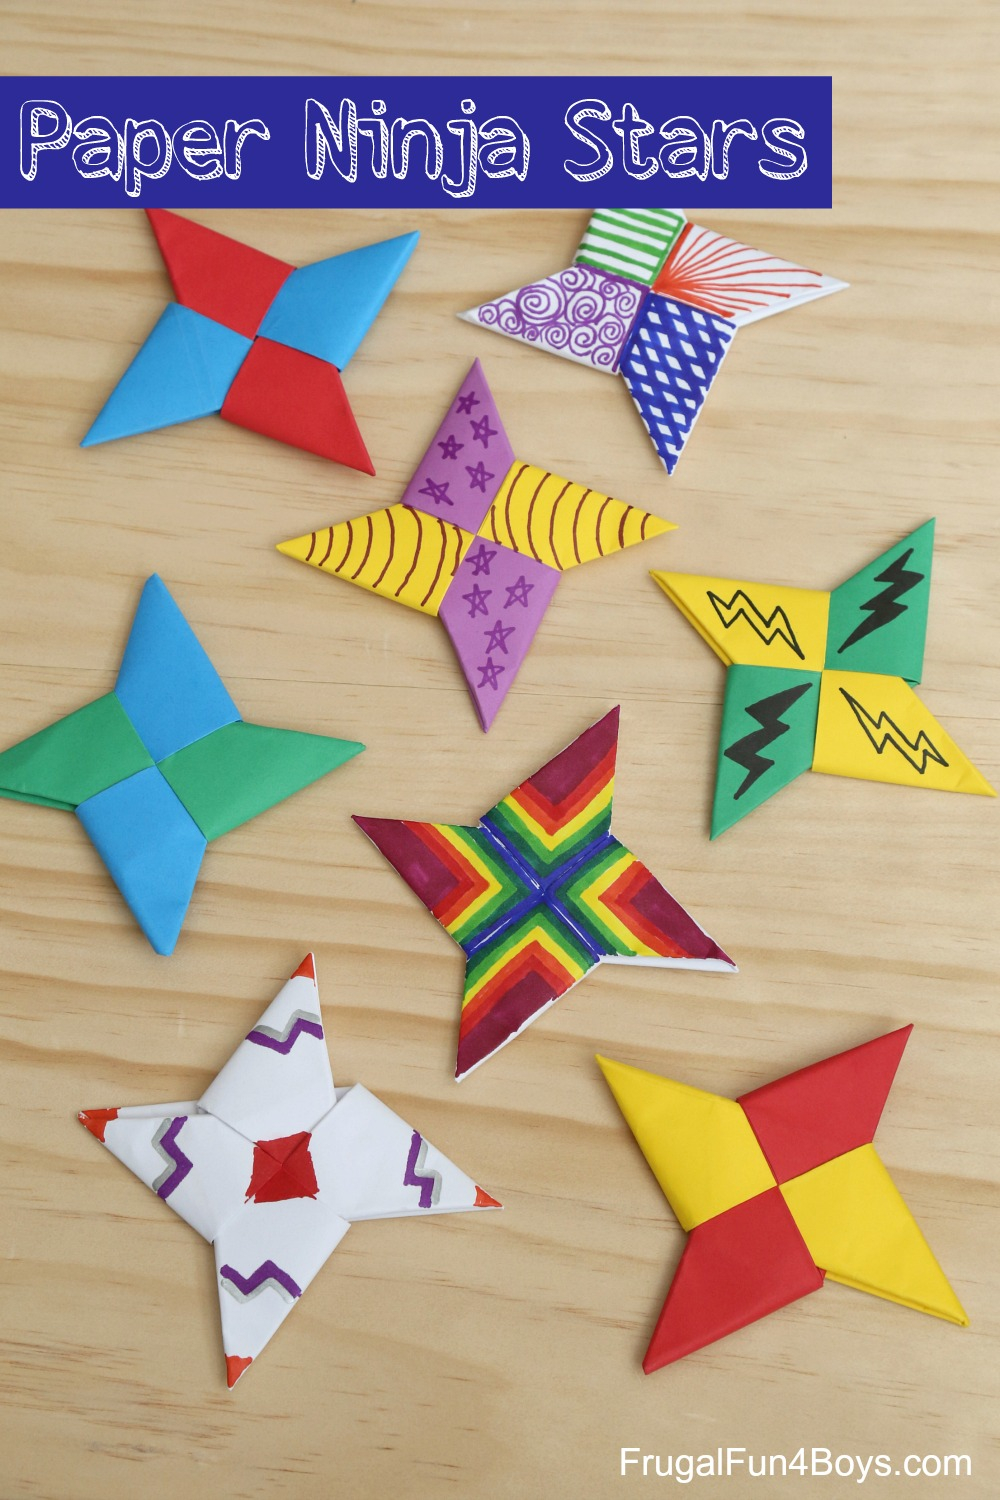 Origami Paper Images How To Fold Paper Ninja Stars Frugal Fun For Boys And Girls